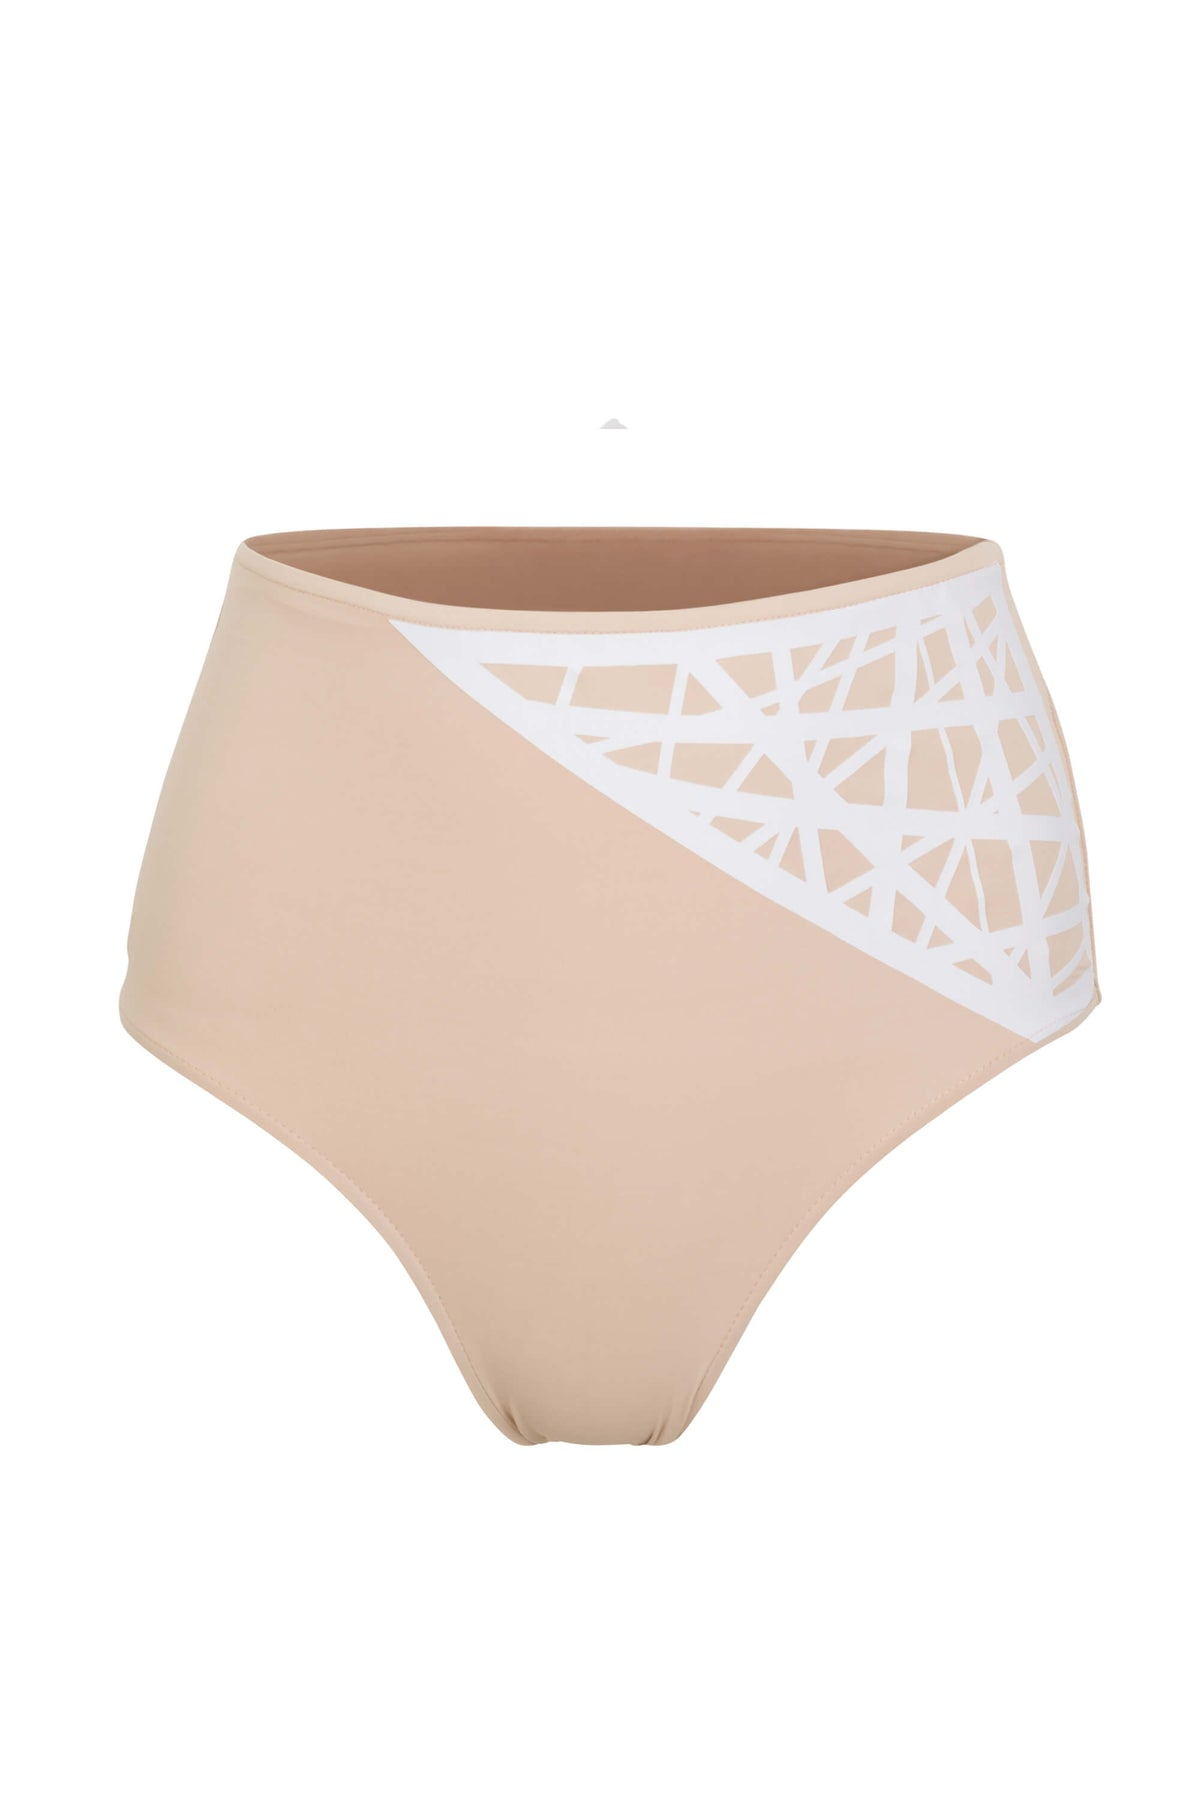 Lillian high waisted bikini bottom in camel with white laser details